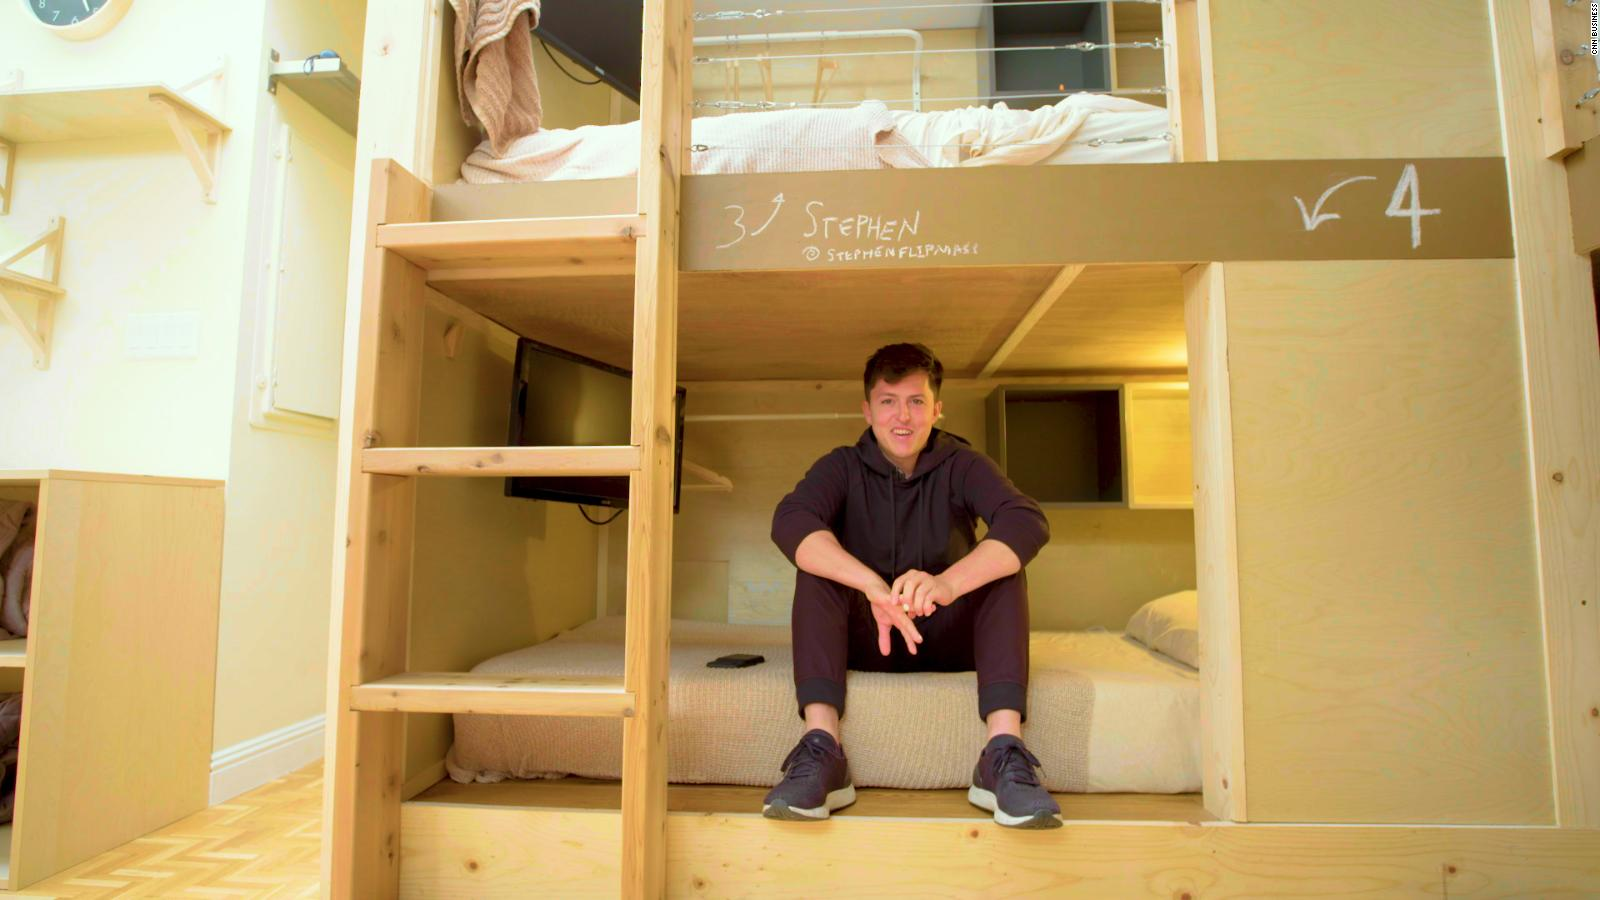 This Bunk Bed In San Francisco Rents For 1 200 A Month Cnn Video